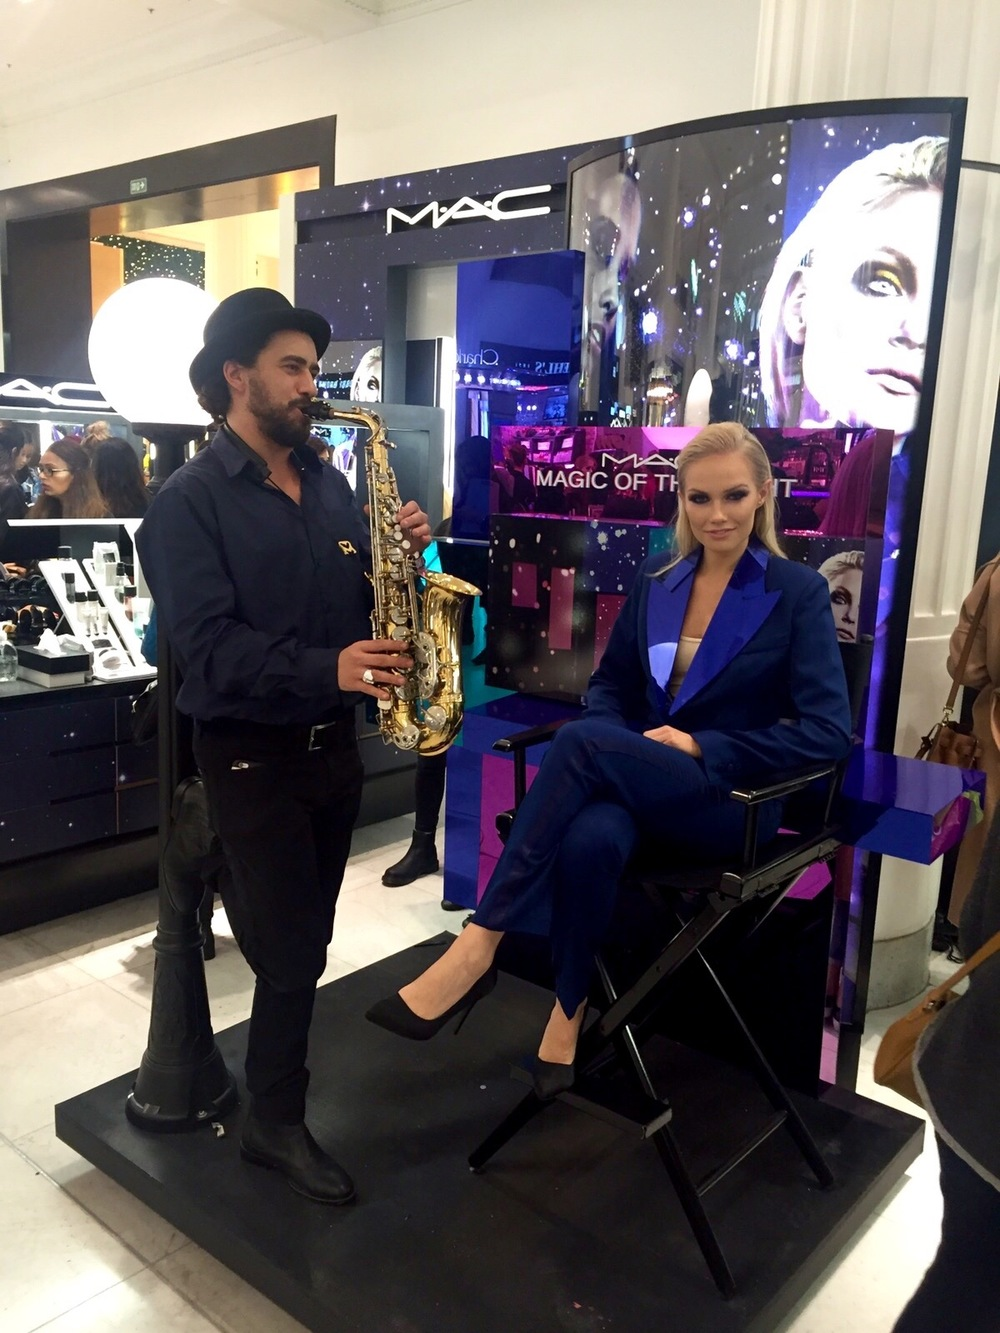 The Sax Man was also there and kept the customers entertained! Check out his instagram @thesaxmanuk